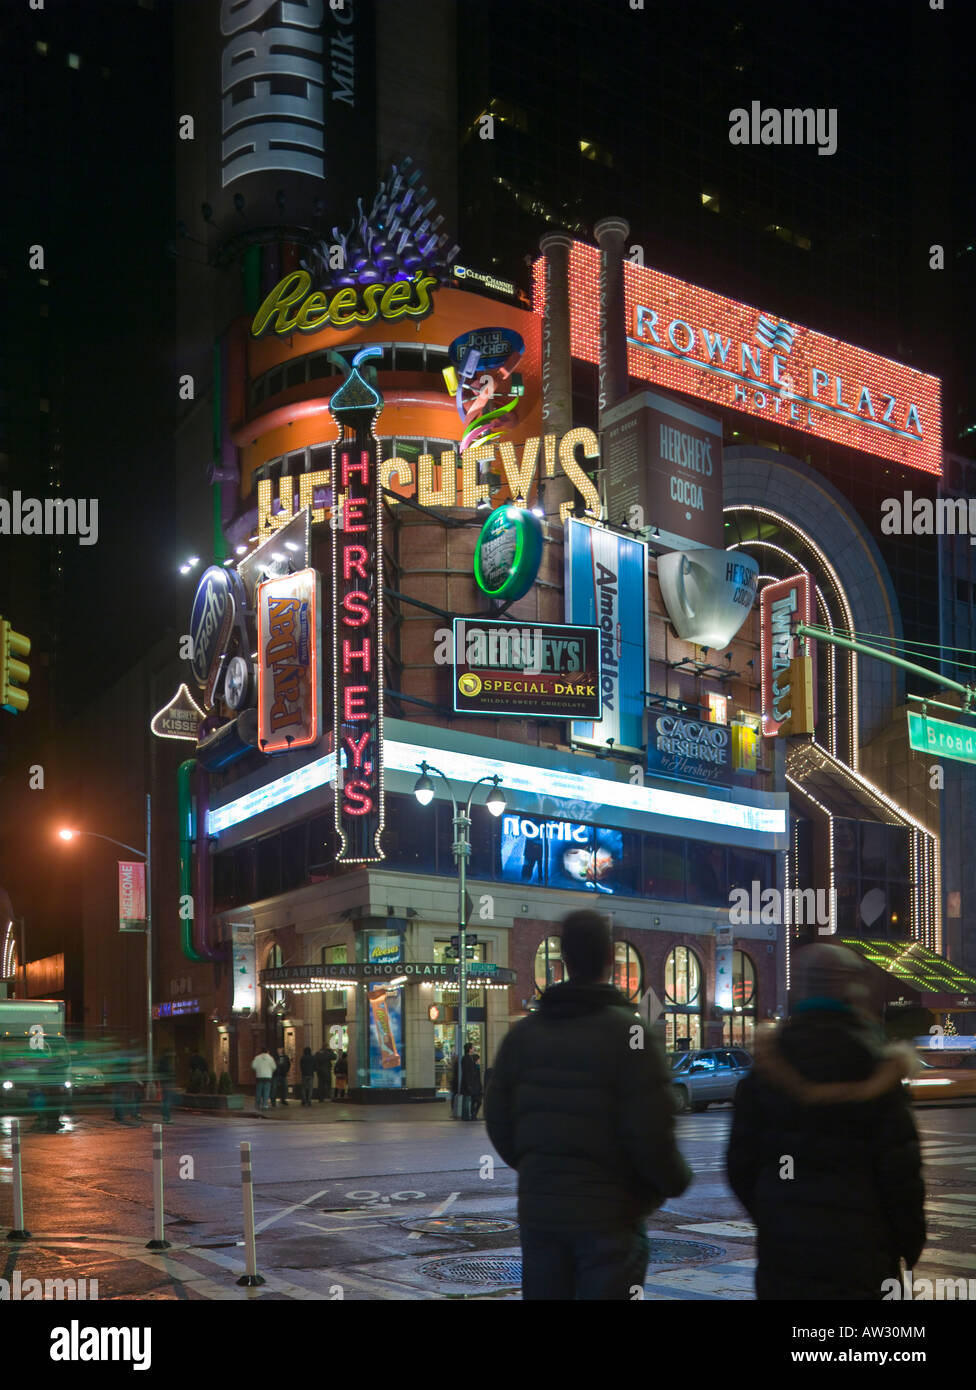 Hersheys advertisements 48th Street and Broadway, near Times Square, Manhattan New York USA at night - Stock Image